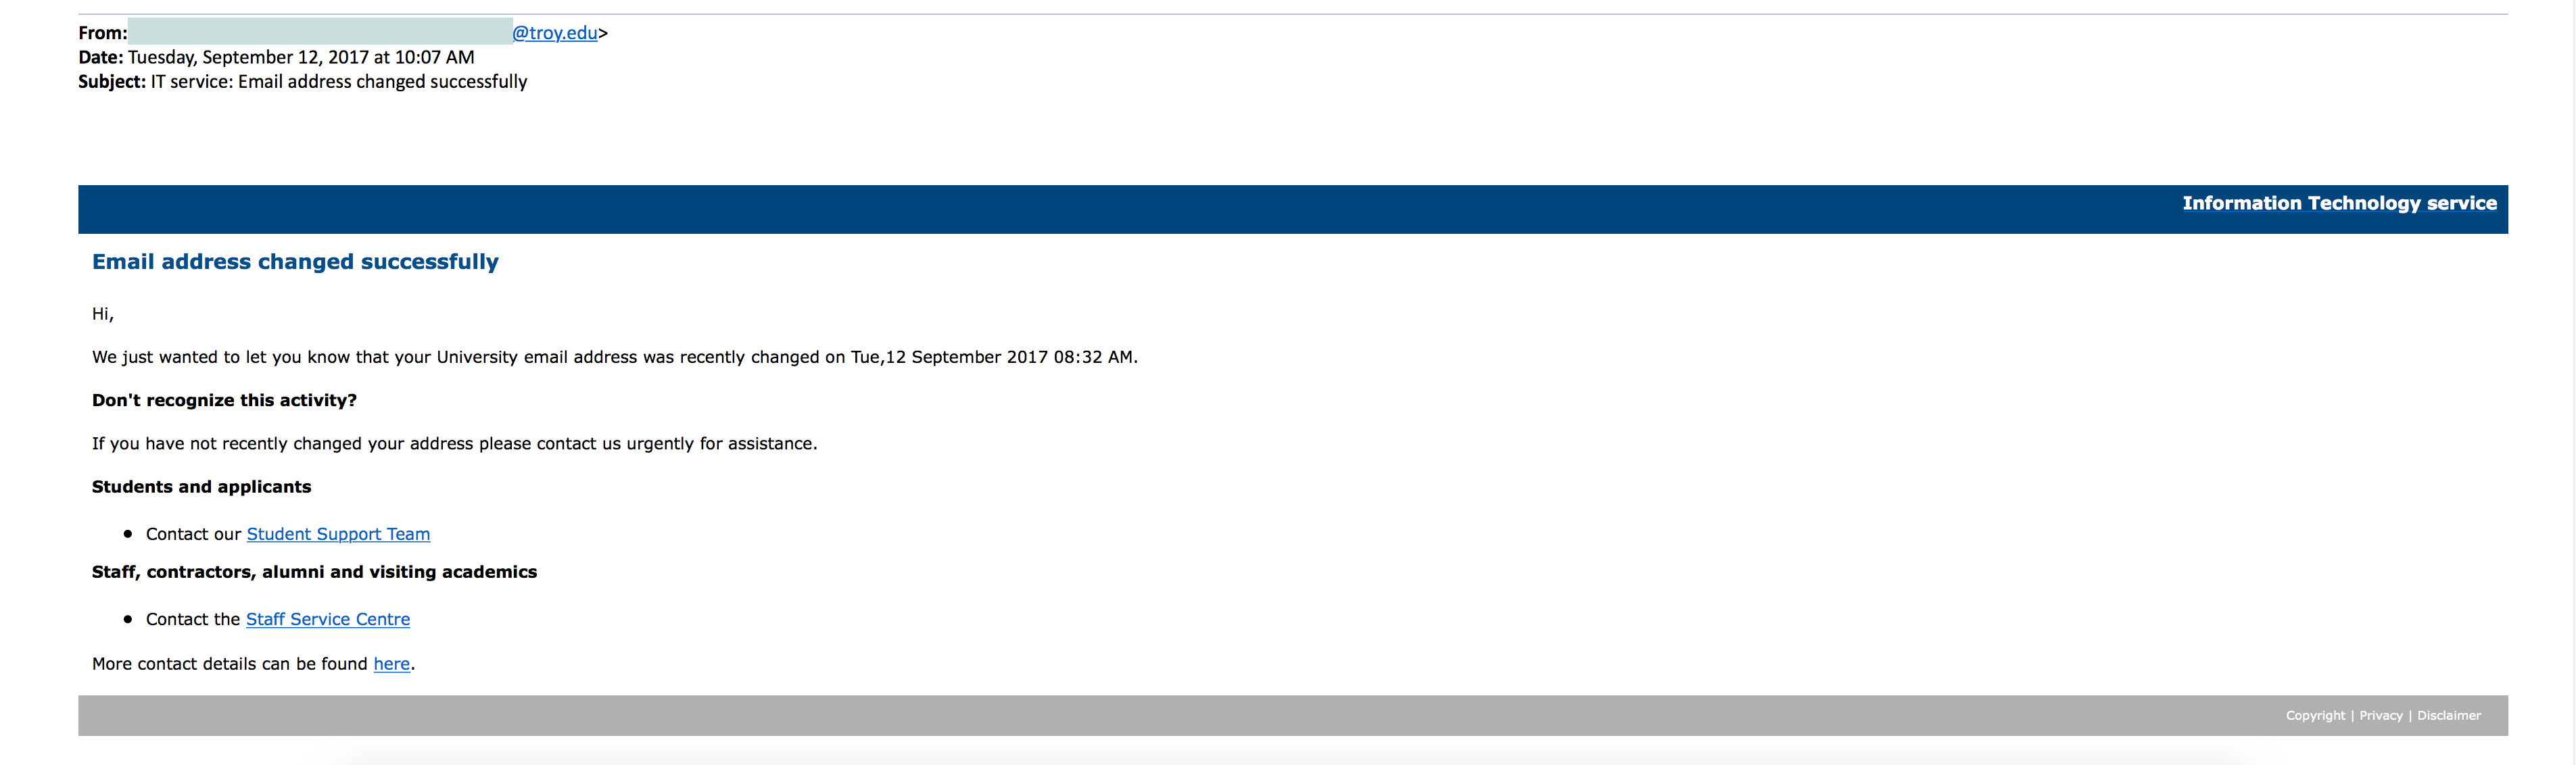 Screenshot of phishing message received in September 2017